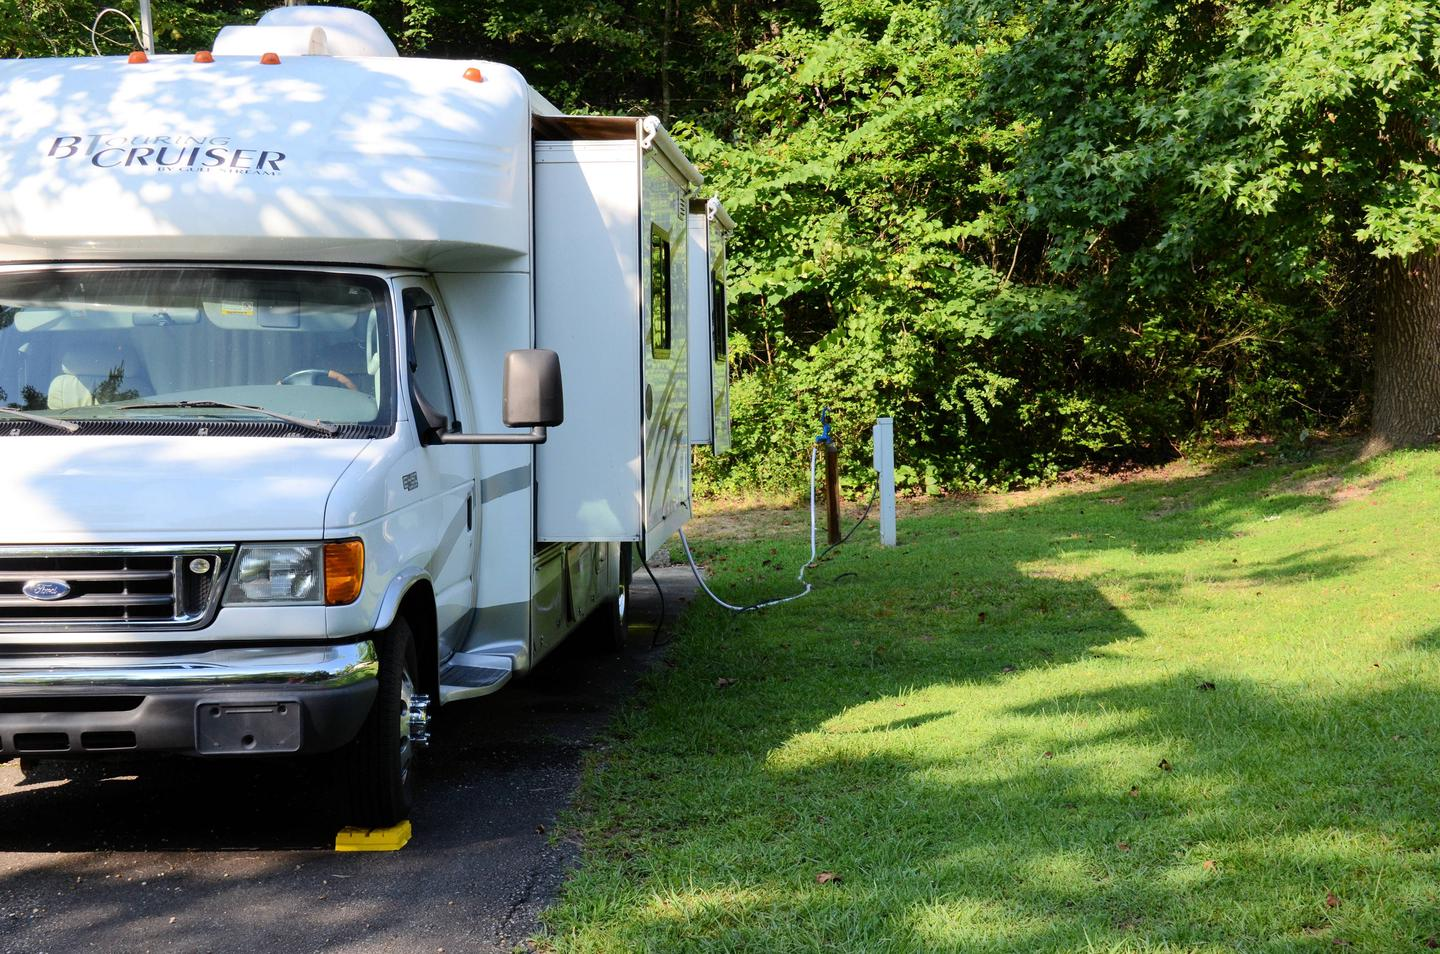 Utilities-side clearance for 16.Payne Campground, campsite 15/16.  Utilities-side clearance for 16.